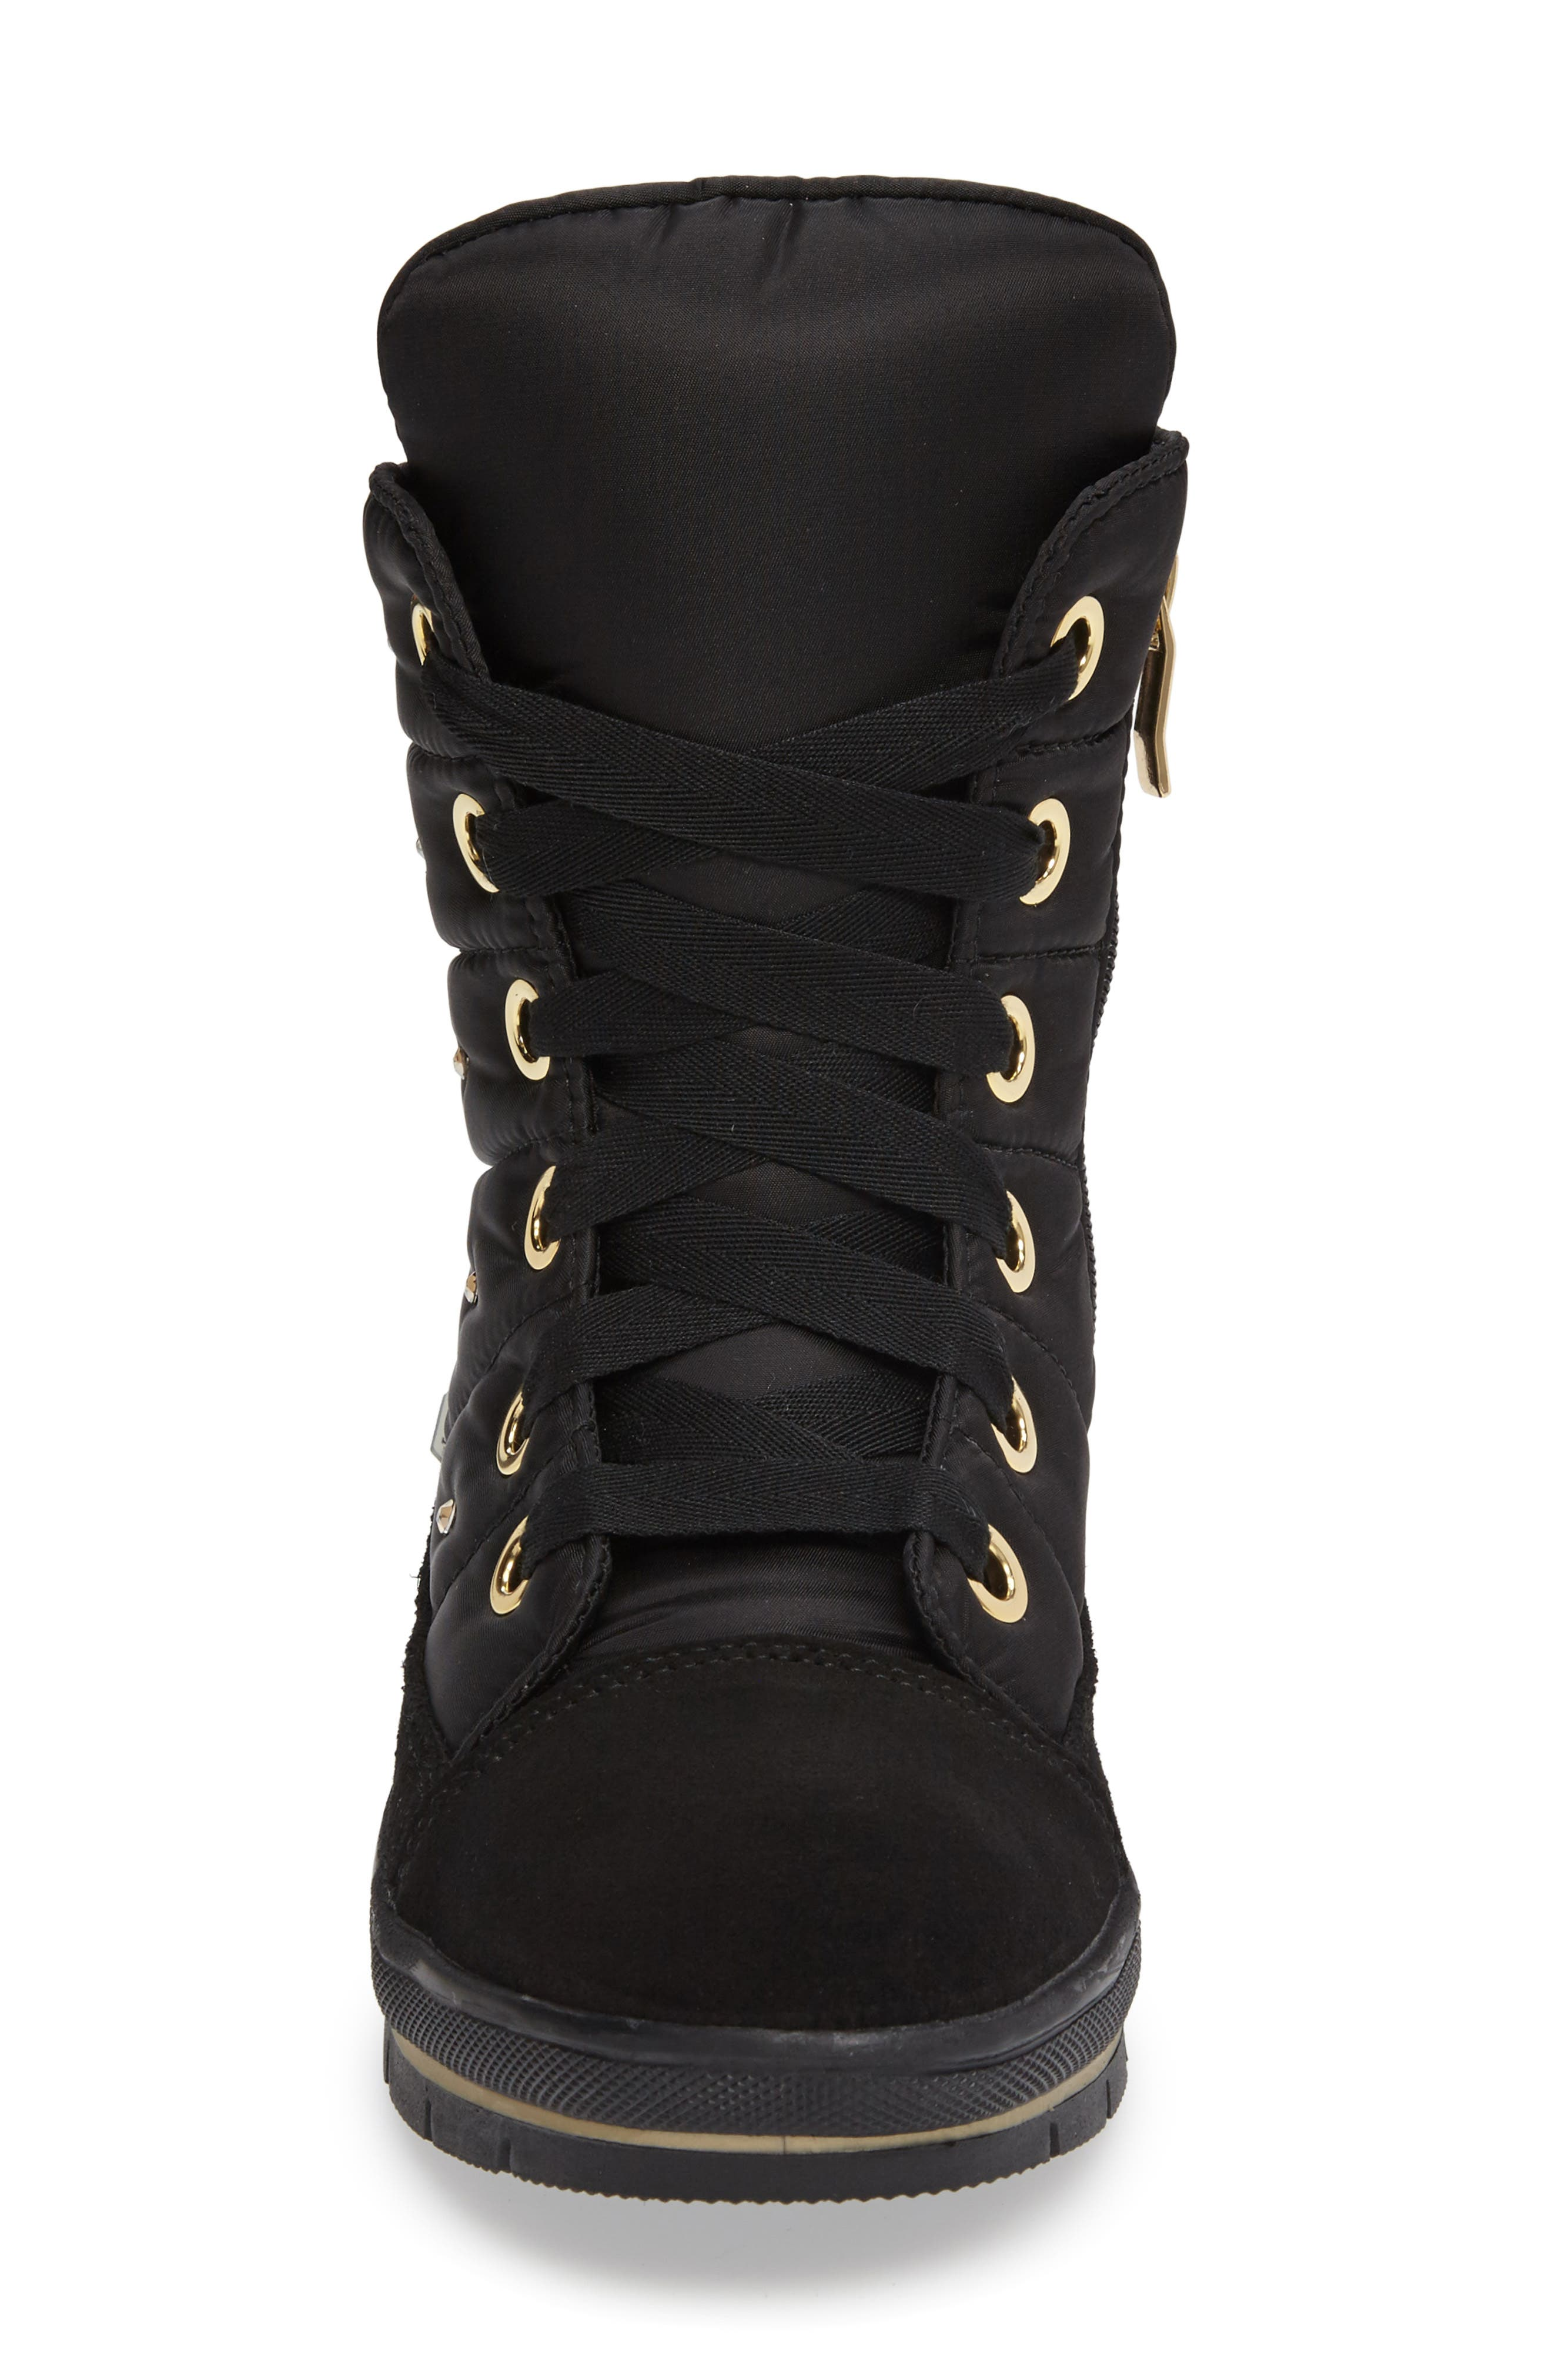 Verbier Waterproof Boot,                             Alternate thumbnail 3, color,                             BLACK / GOLD SWAROVSKI